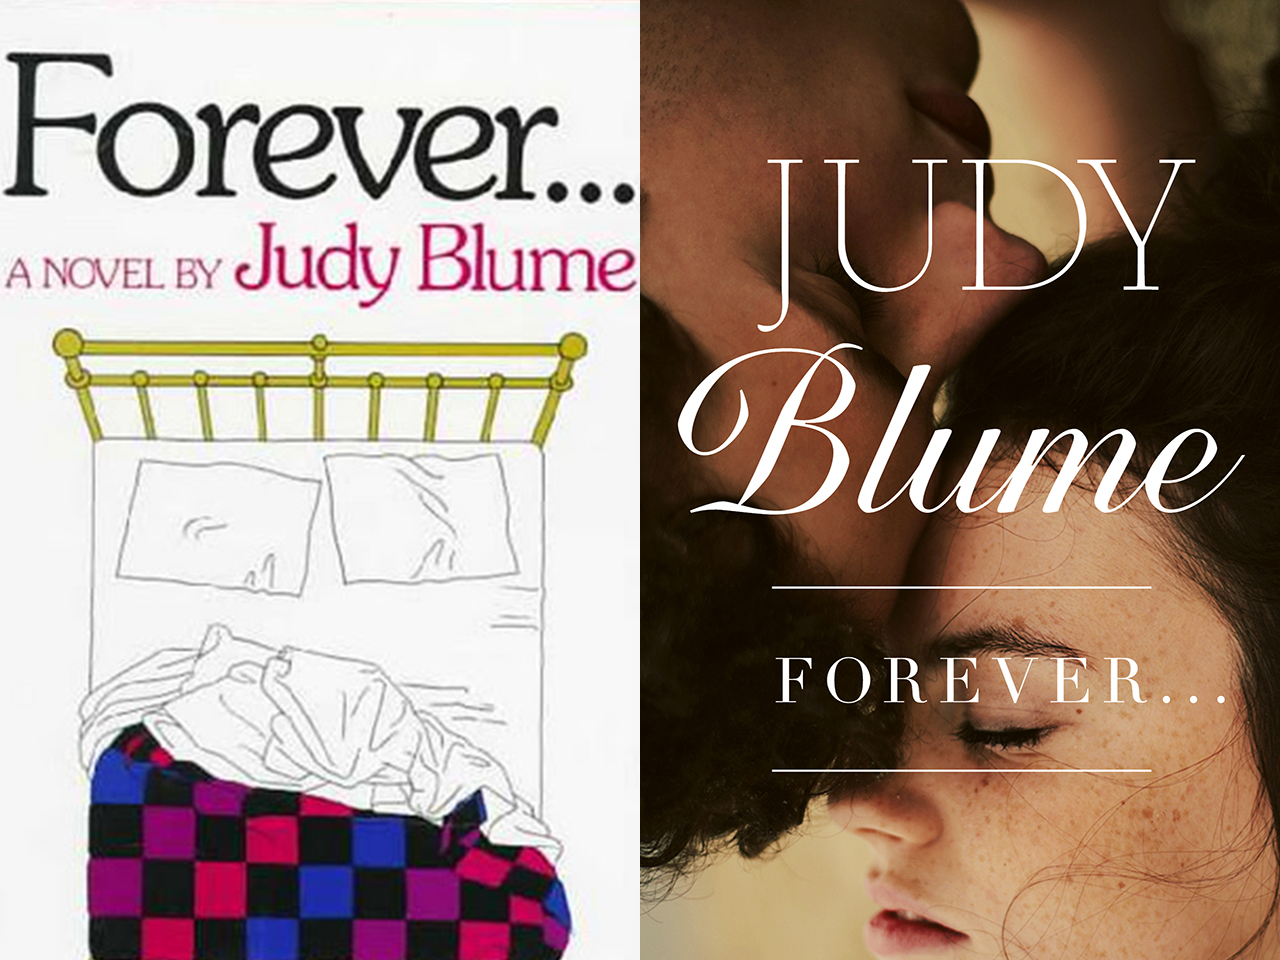 essay on forever by judy blume Life of judy blume this essay life of judy blume and other 63,000+ term papers, college essay examples and free essays are available now on reviewessayscom.